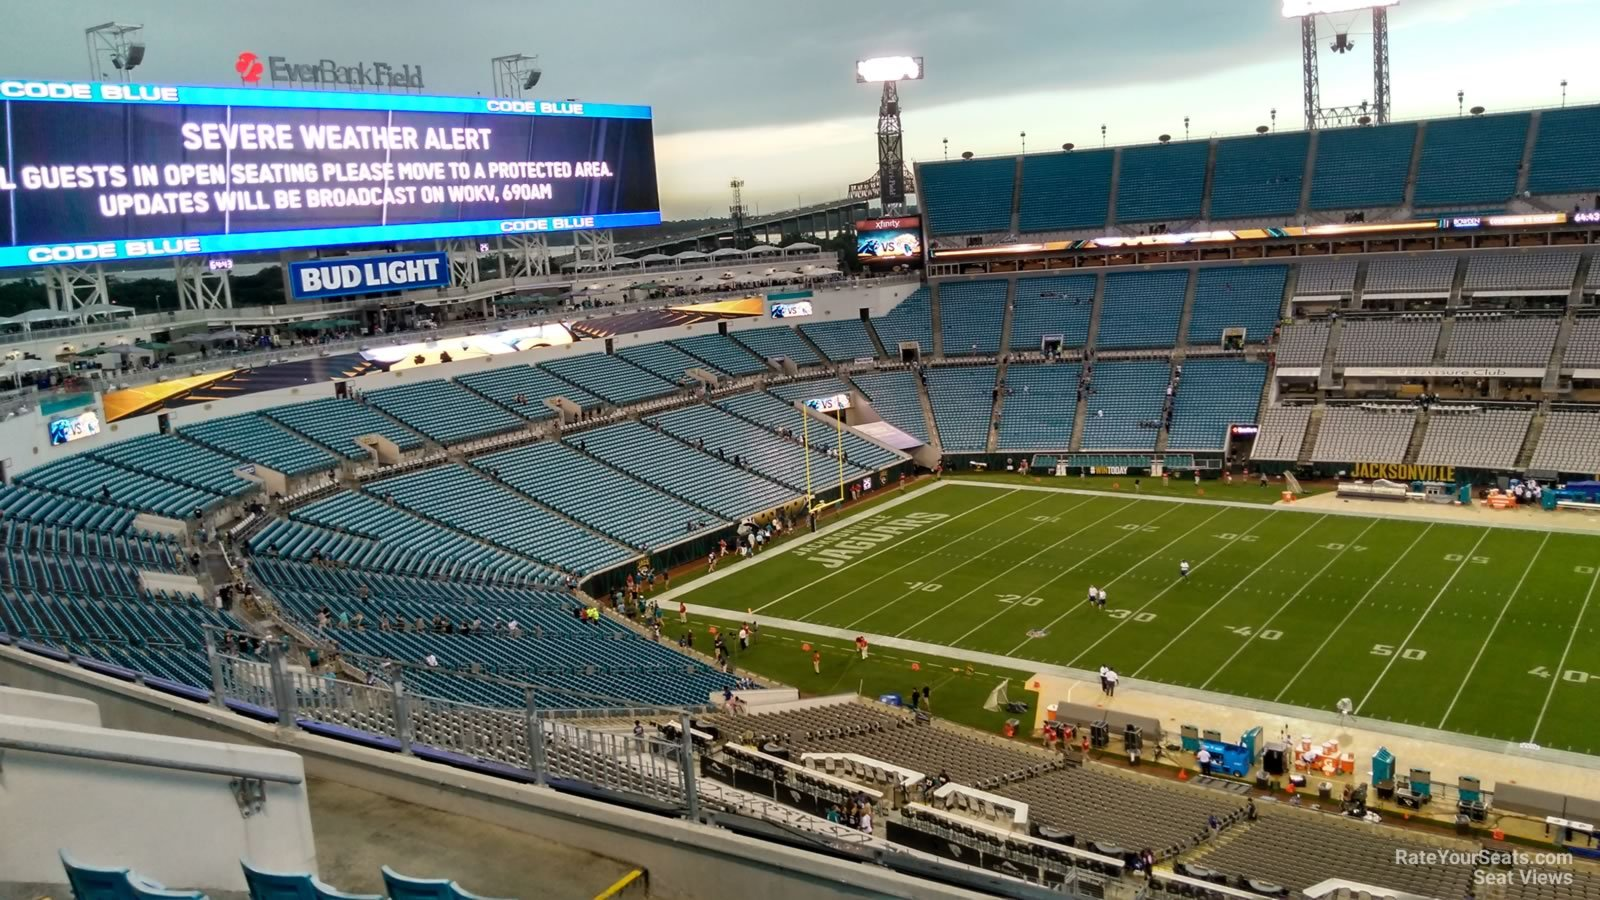 Section 409 seat view